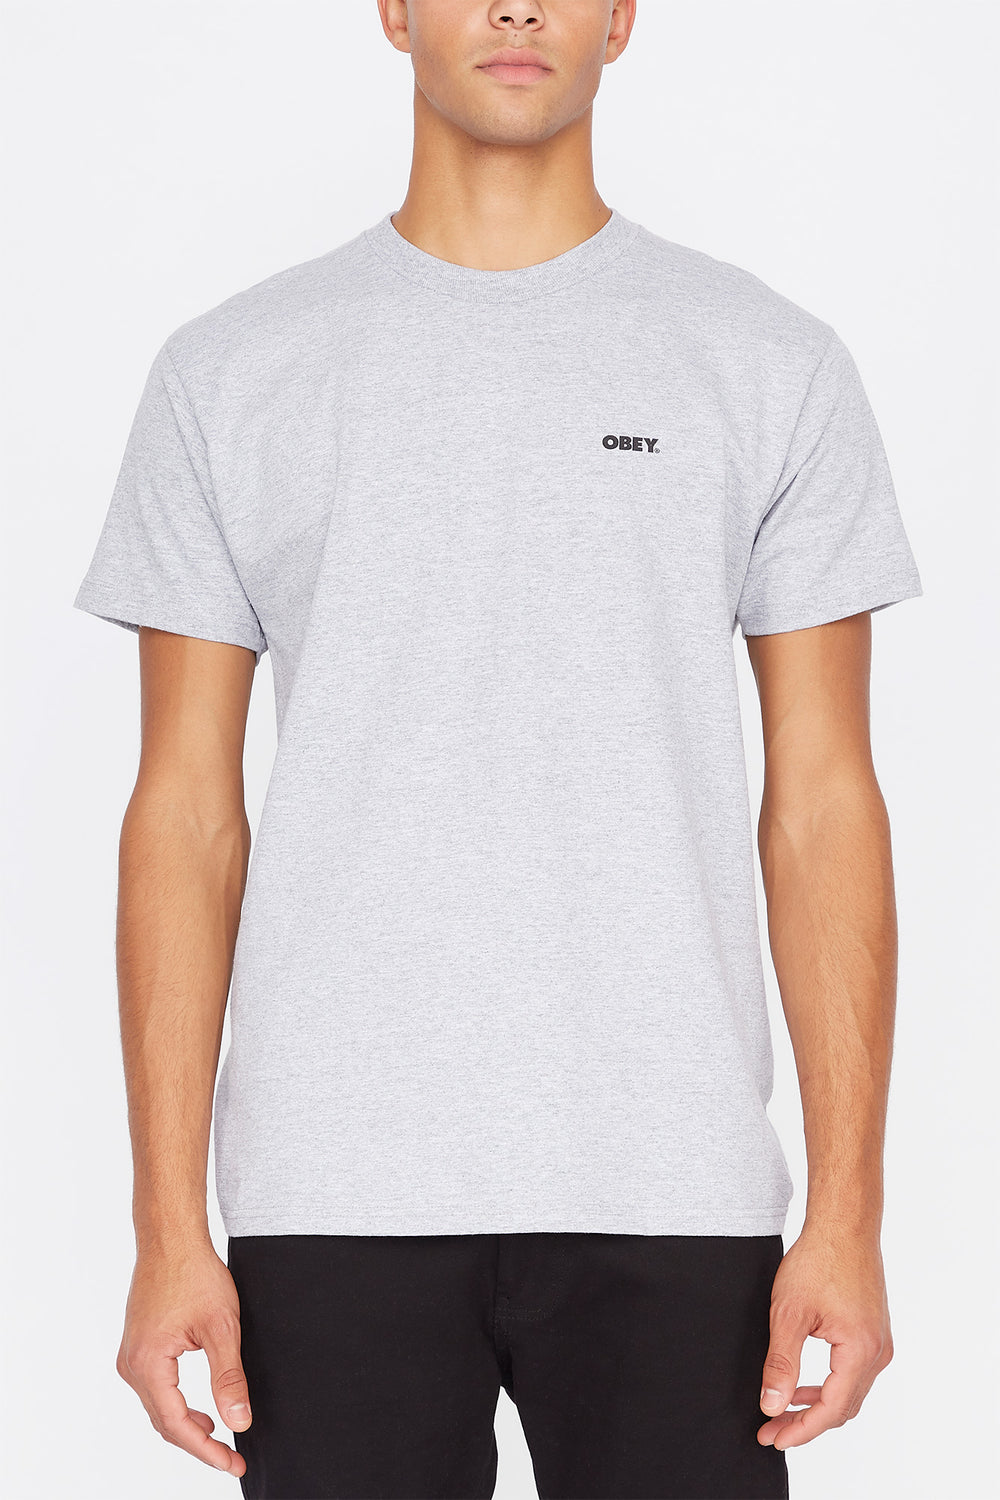 Obey All That Matters T-Shirt Heather Grey